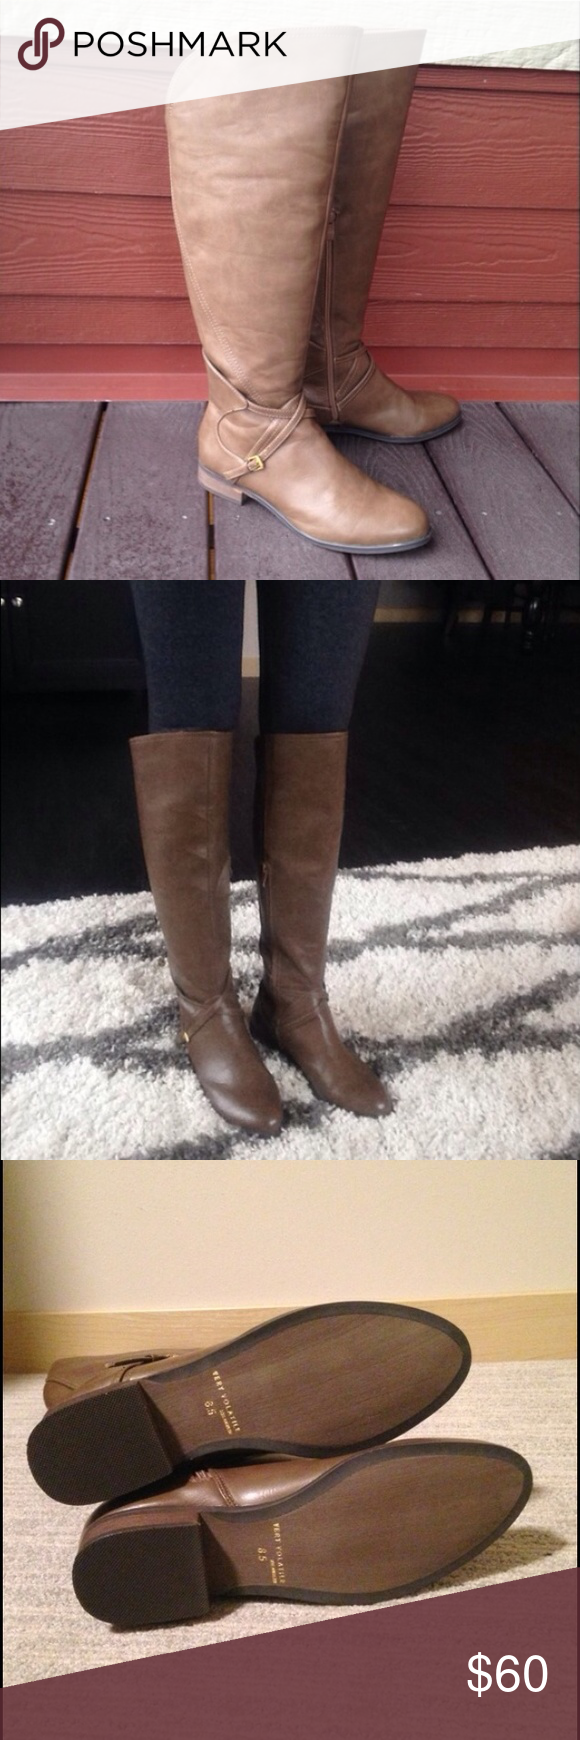 NWT Knee High Tan Gray Rider Heel Boots Size 8.5 So chic and classy! Boutique Shoes Over the Knee Boots